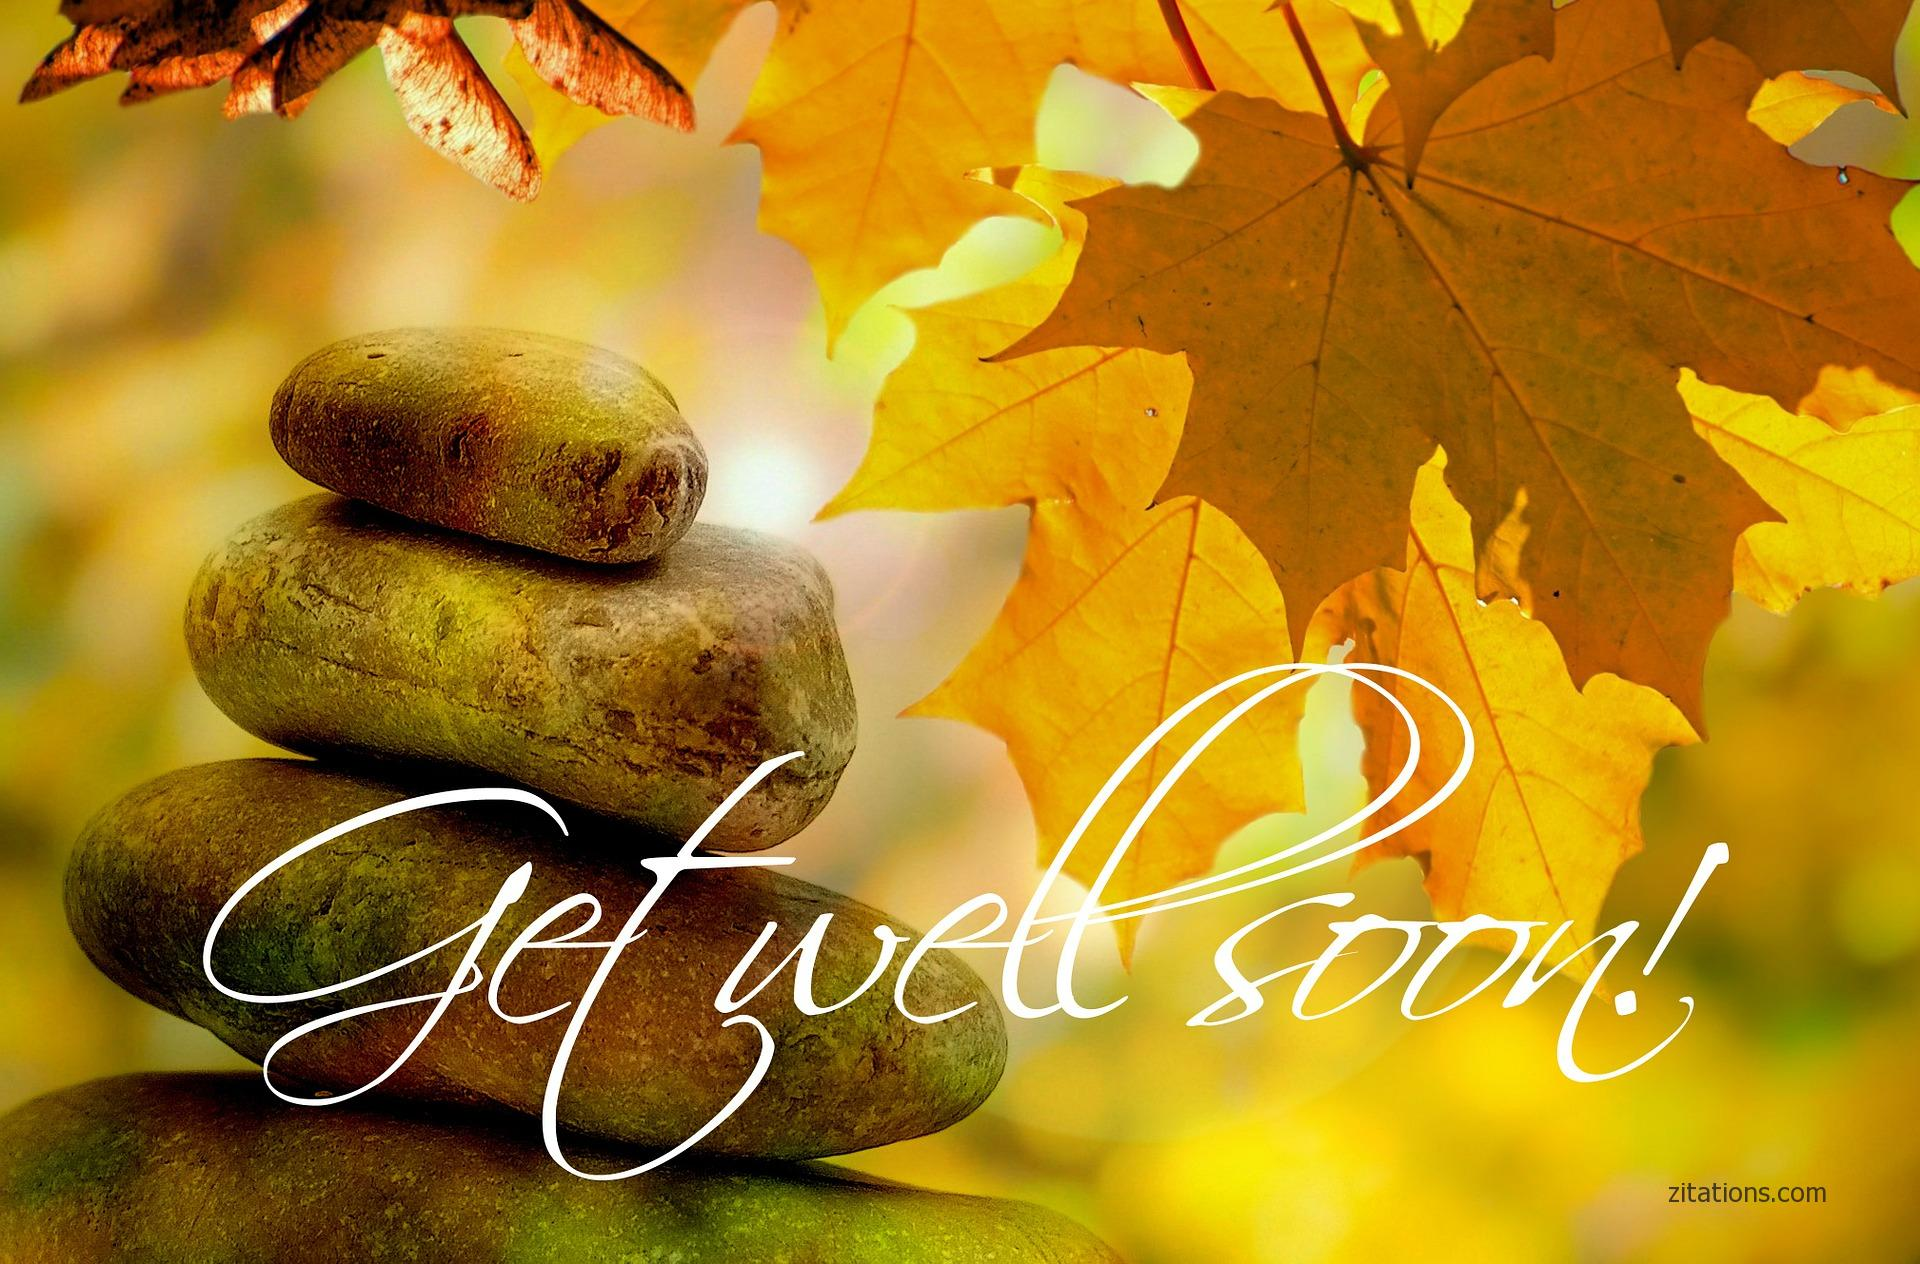 10 Speedy Recovery Wishes For Healing And Comfort Zitations